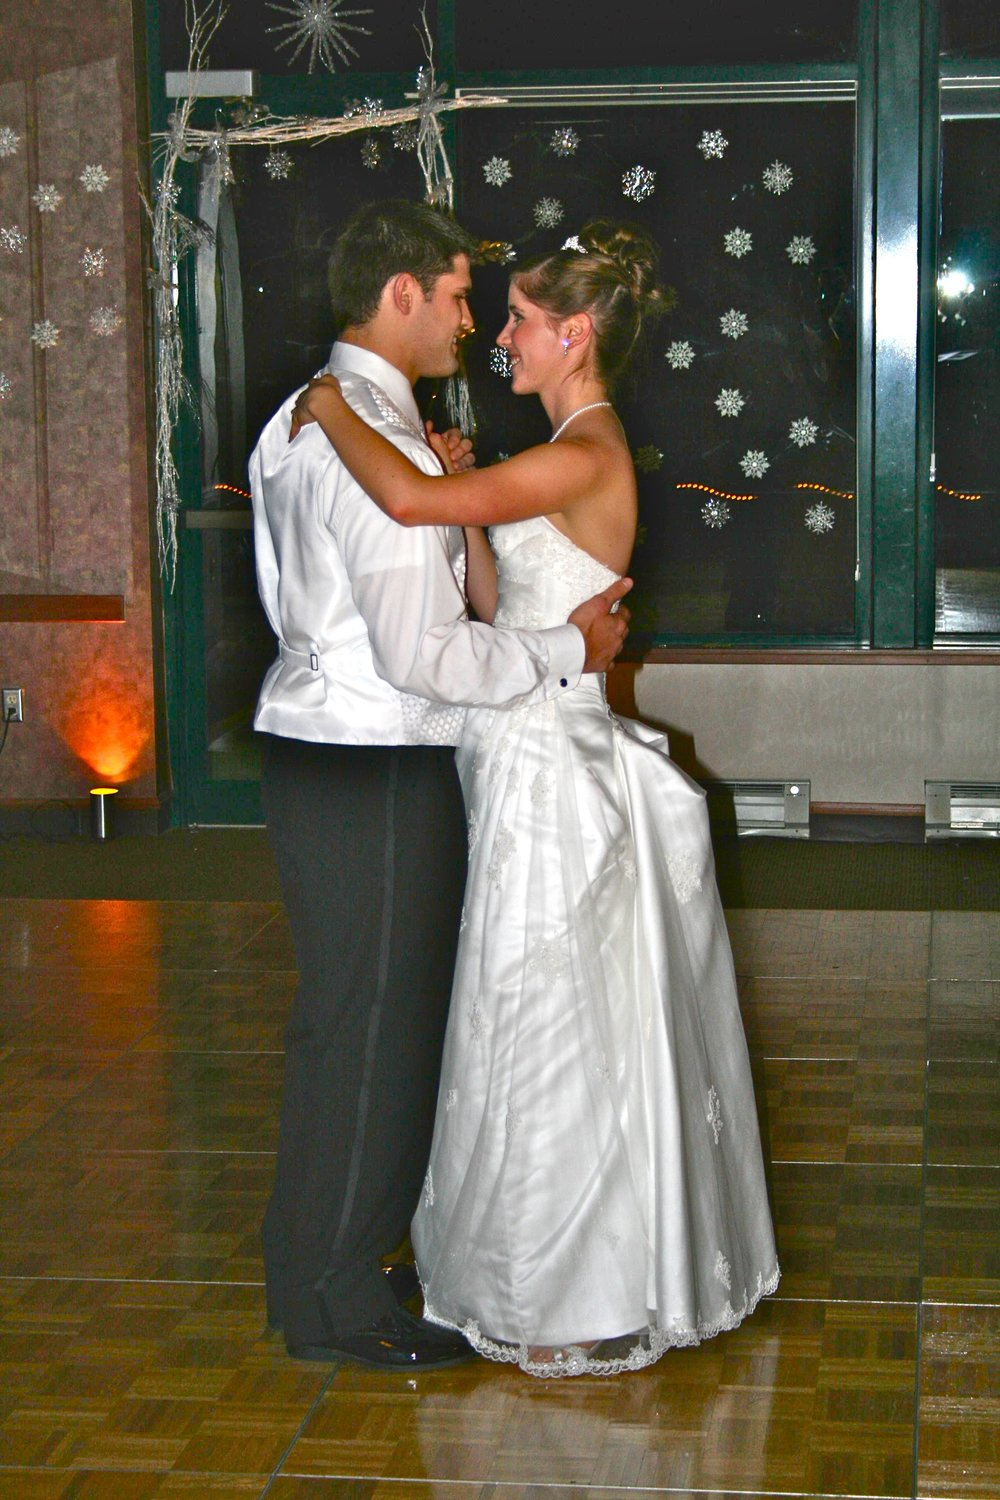 Erica & Drew's first dance was The Day Before You by Rascal Flatts...